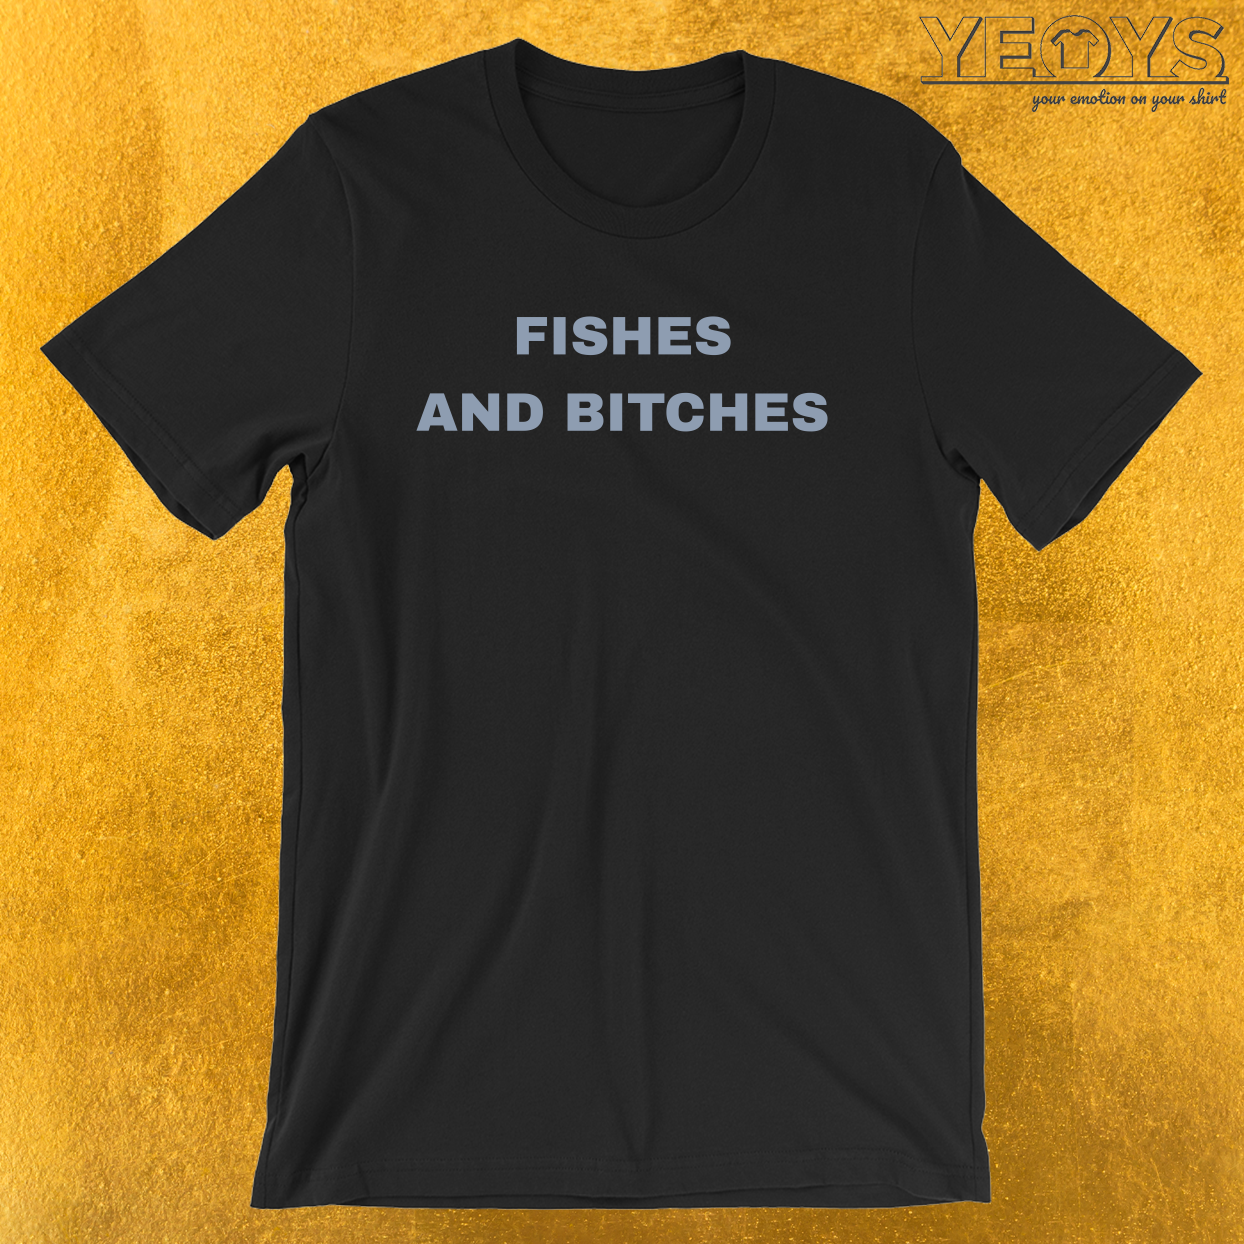 Fishes And Bitches – Funny Fishing Trip Tee